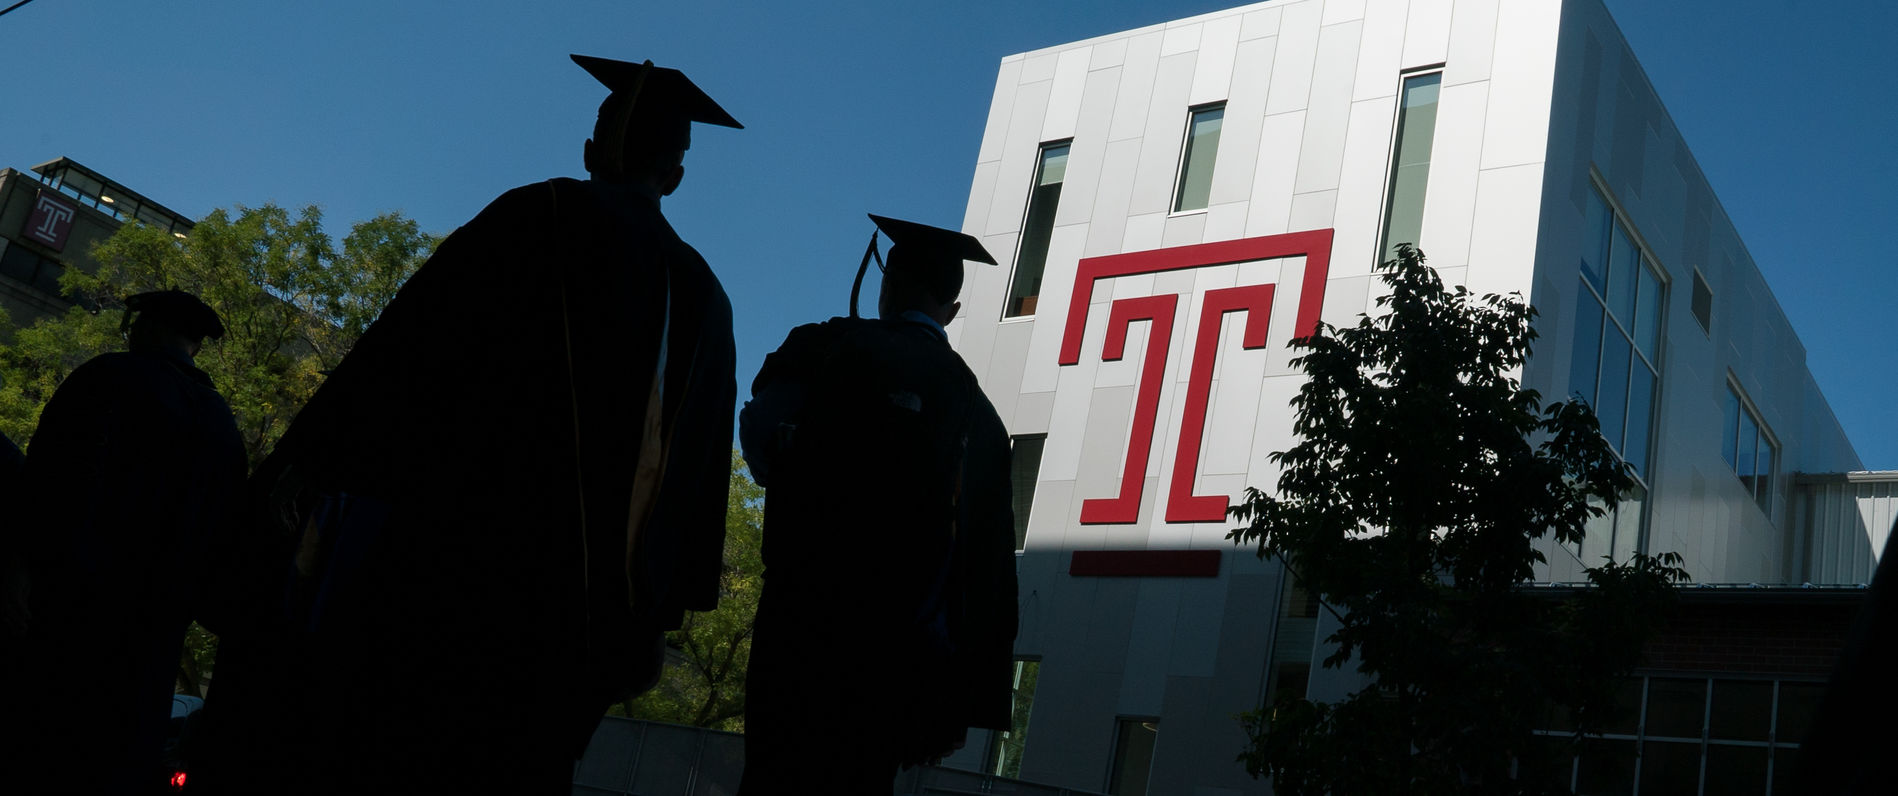 Two students in caps and gowns walking on campus next to building with Temple T on the front